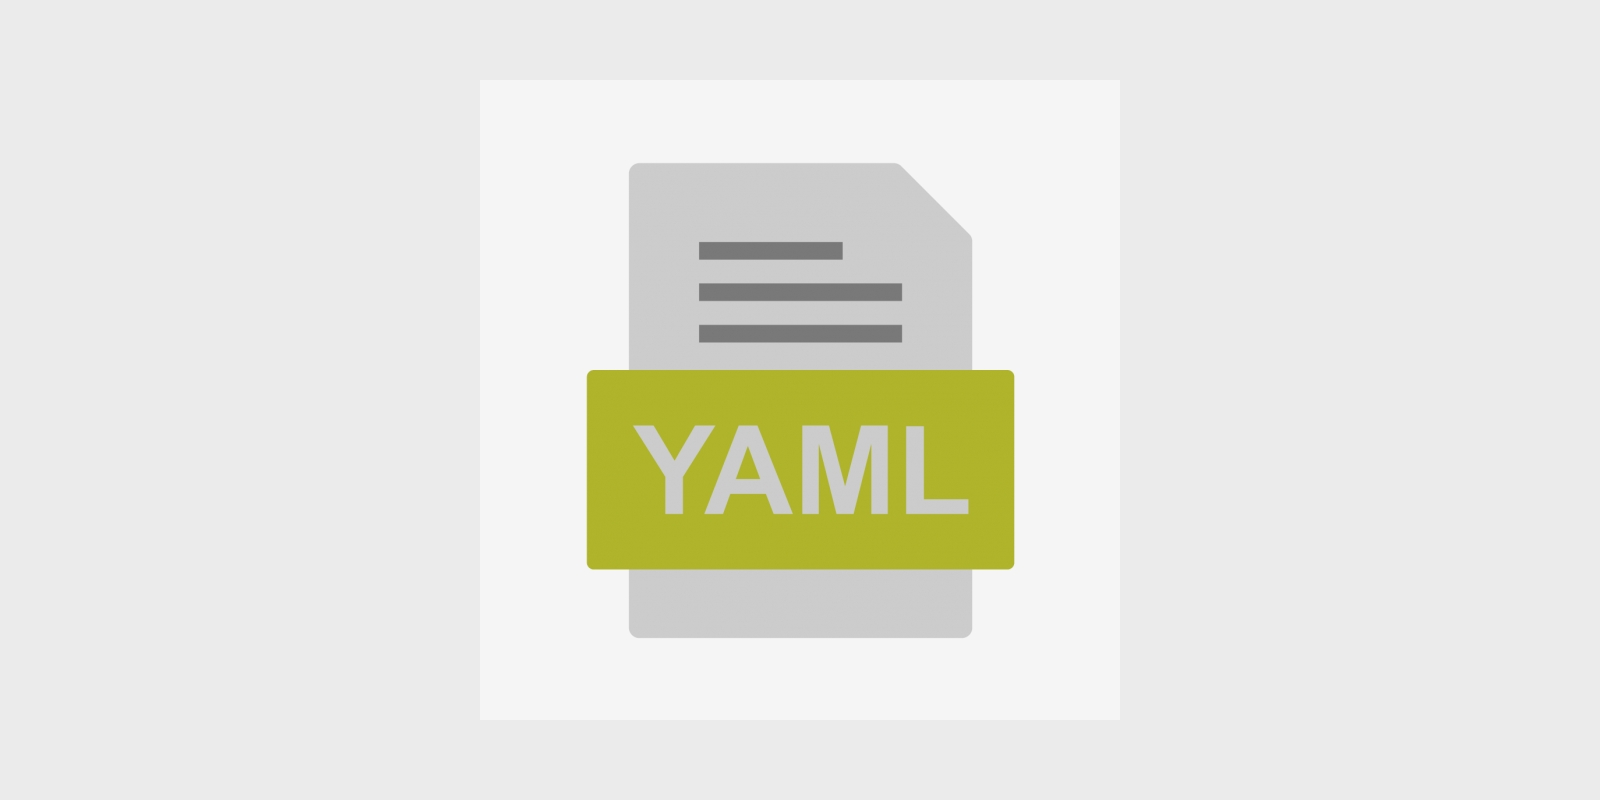 How YAML Helped Me Format and Process Text Data From Documents Much Faster